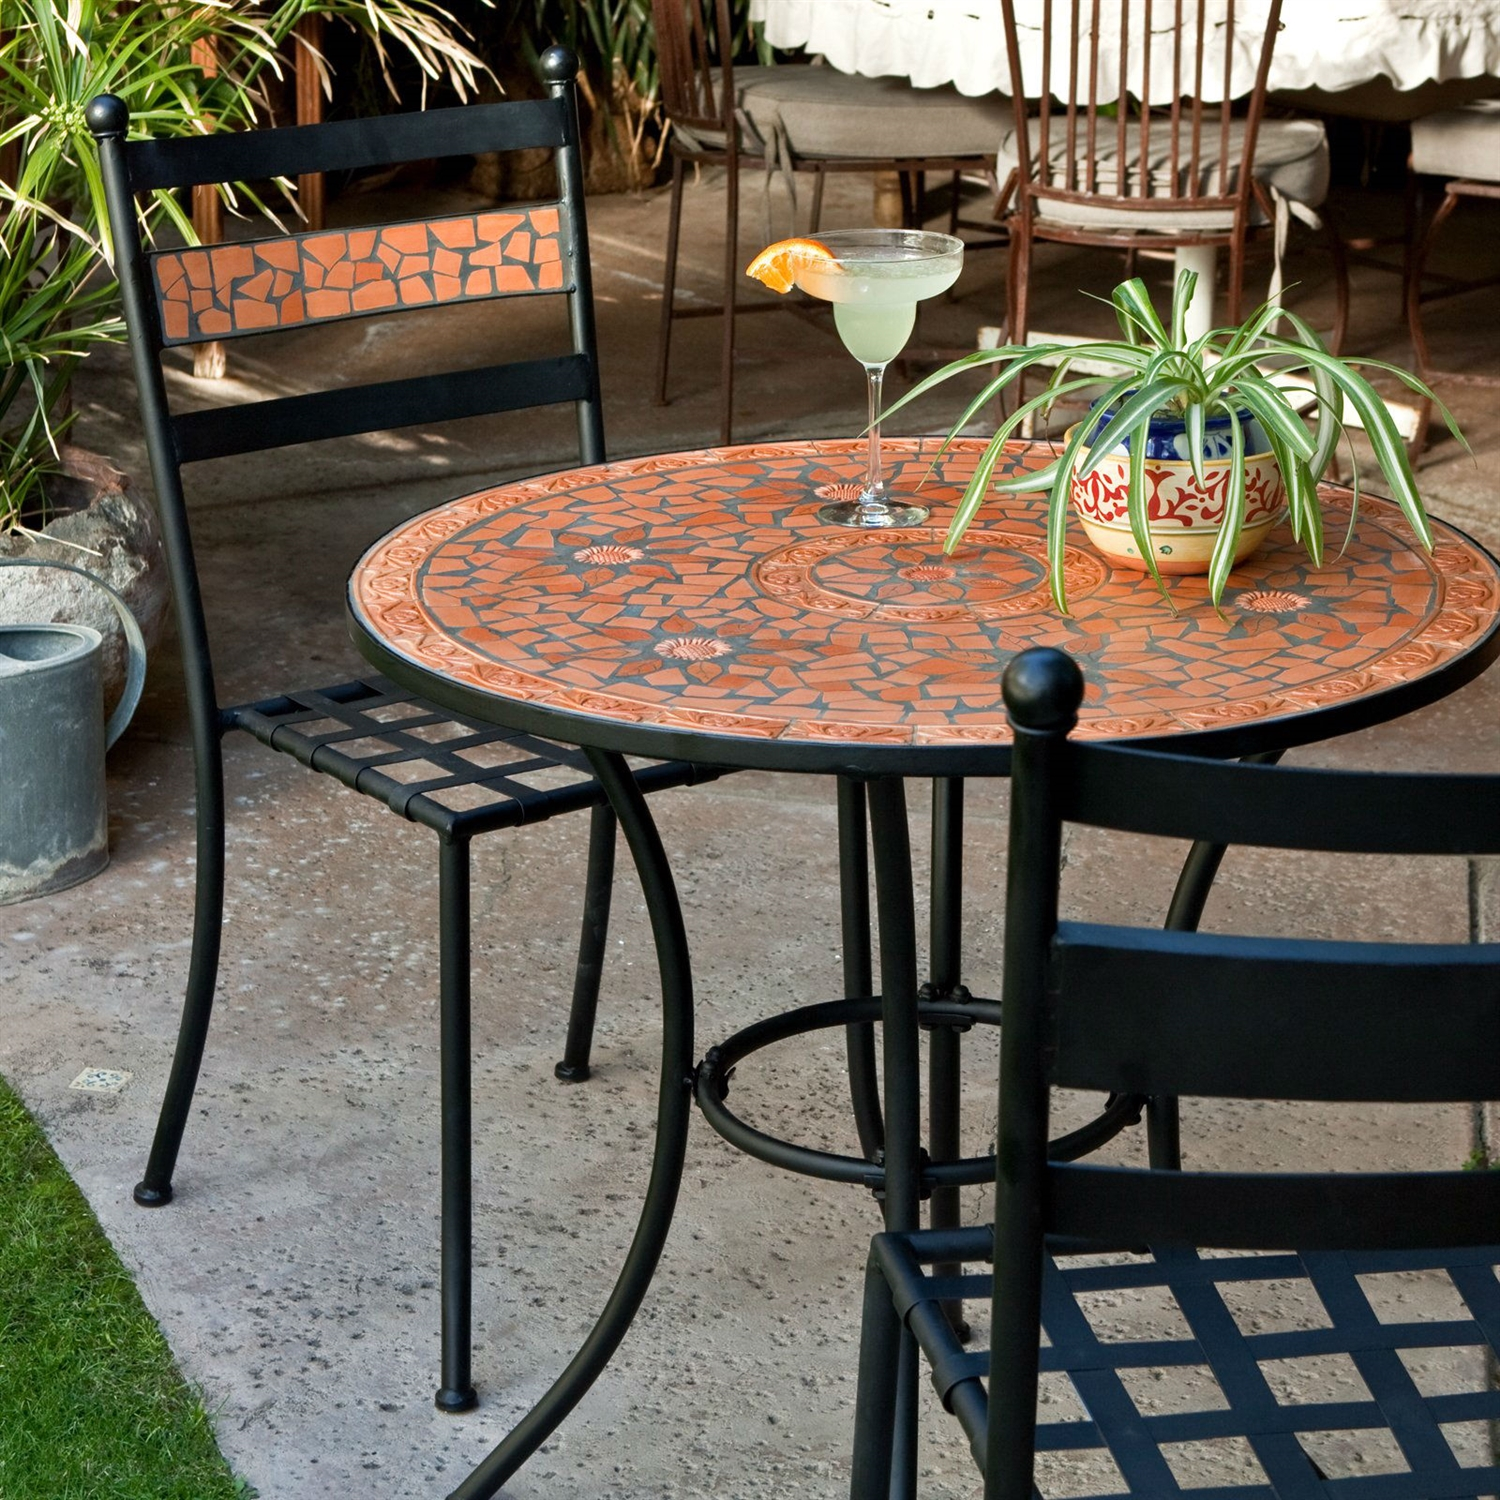 Attractive 3 Piece Black Metal Patio Bistro Set With Terra Cotta Tiles